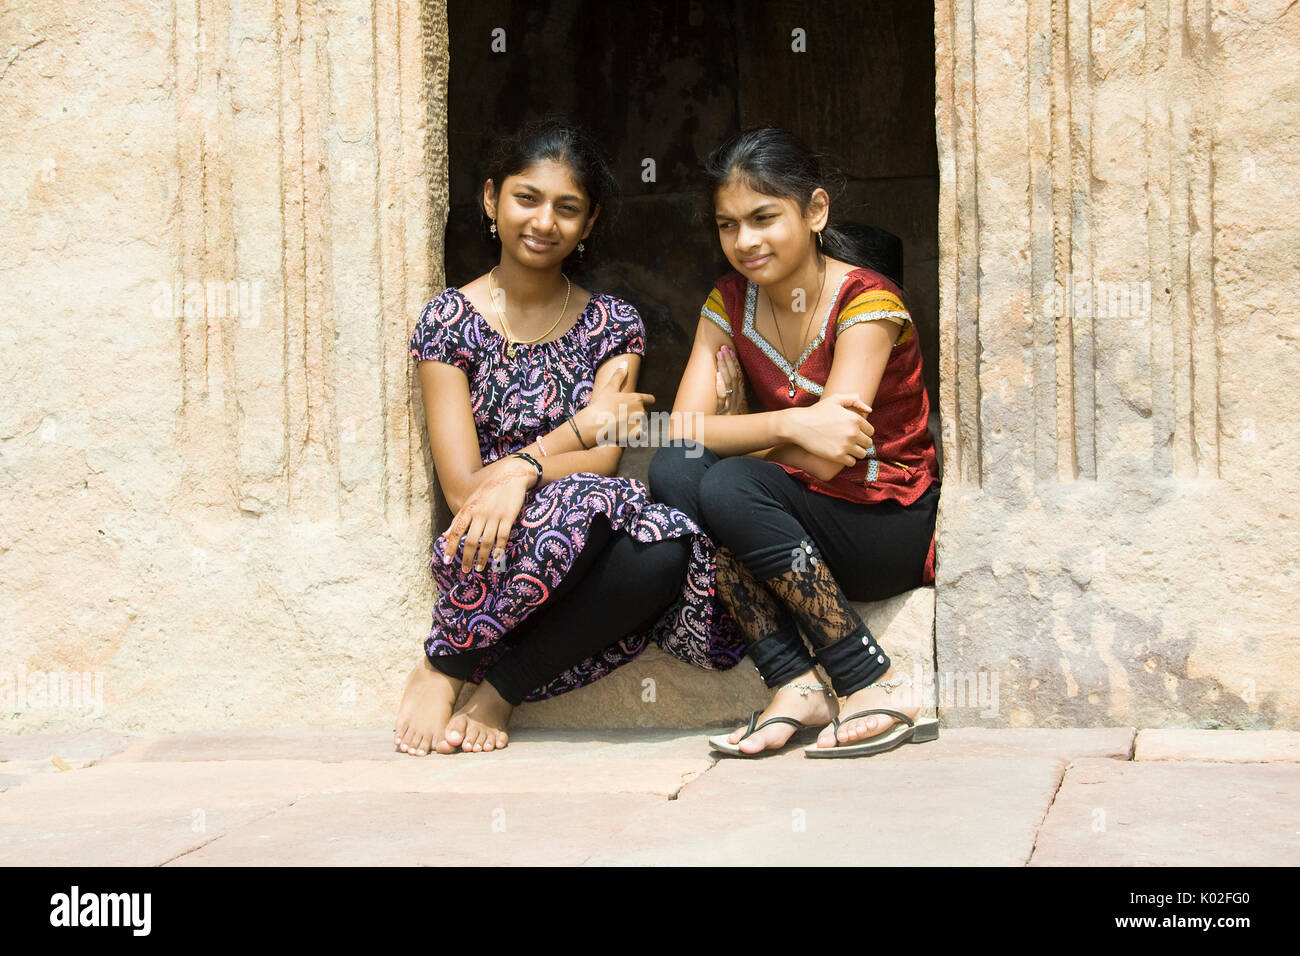 Two girls in happy disposition sitting on a doorstep Uploaded on 27jul17 Accepted - Stock Image